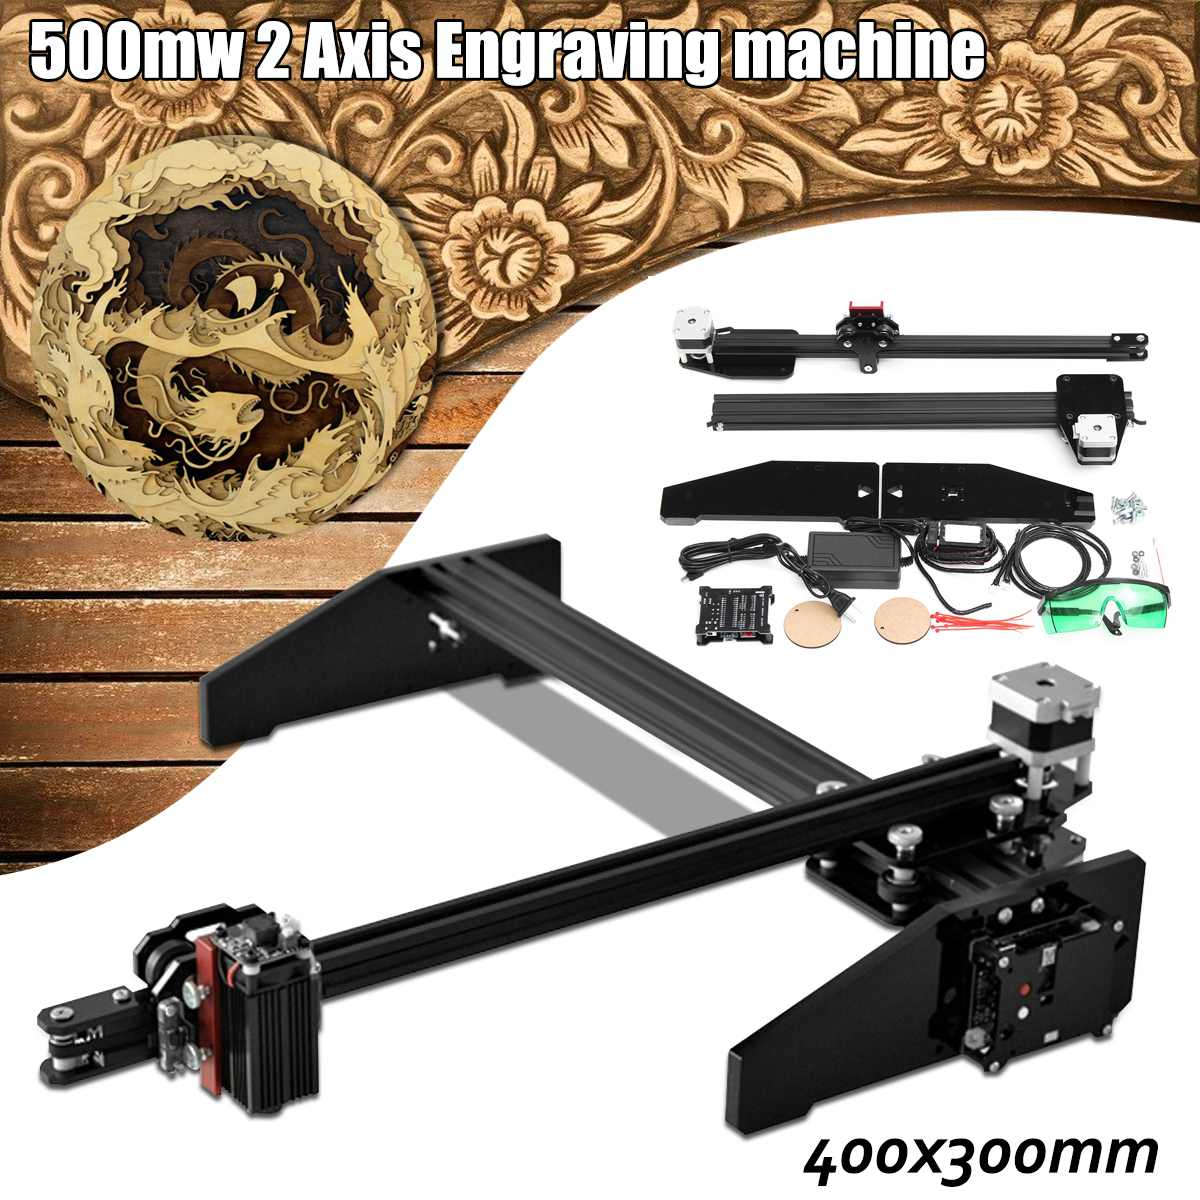 Newest 40*30cm 500mw 2Axis A3 Laser Engraving Cutting Engraver CNC Home DIY Cutter  Printer Using Stepper Motor Machine Tool